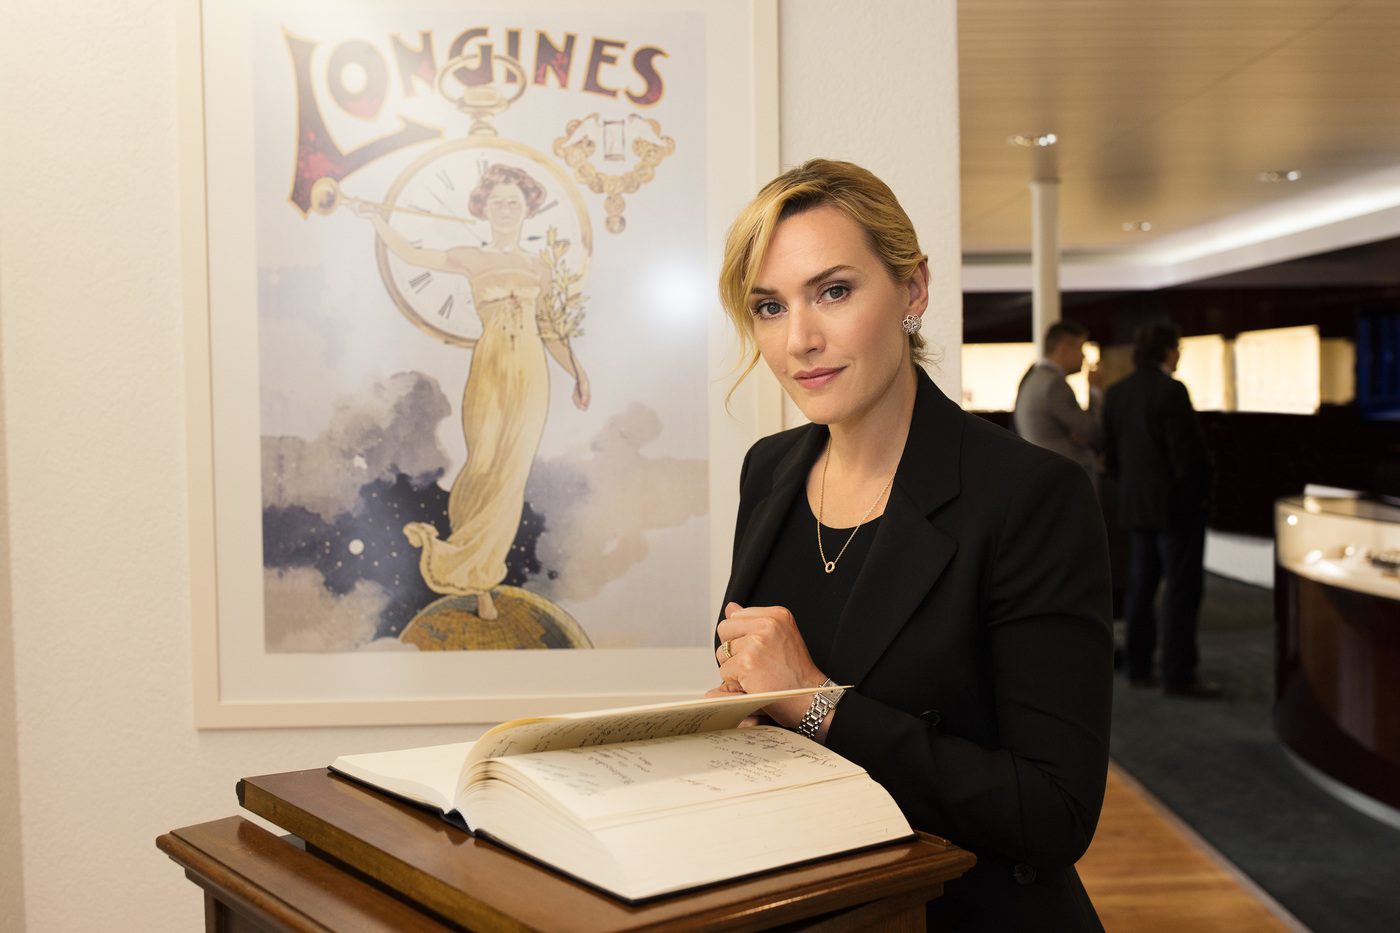 Longines Corporate Event: Longines honoured to welcome Ambassador of Elegance Kate Winslet to Saint-Imier  7